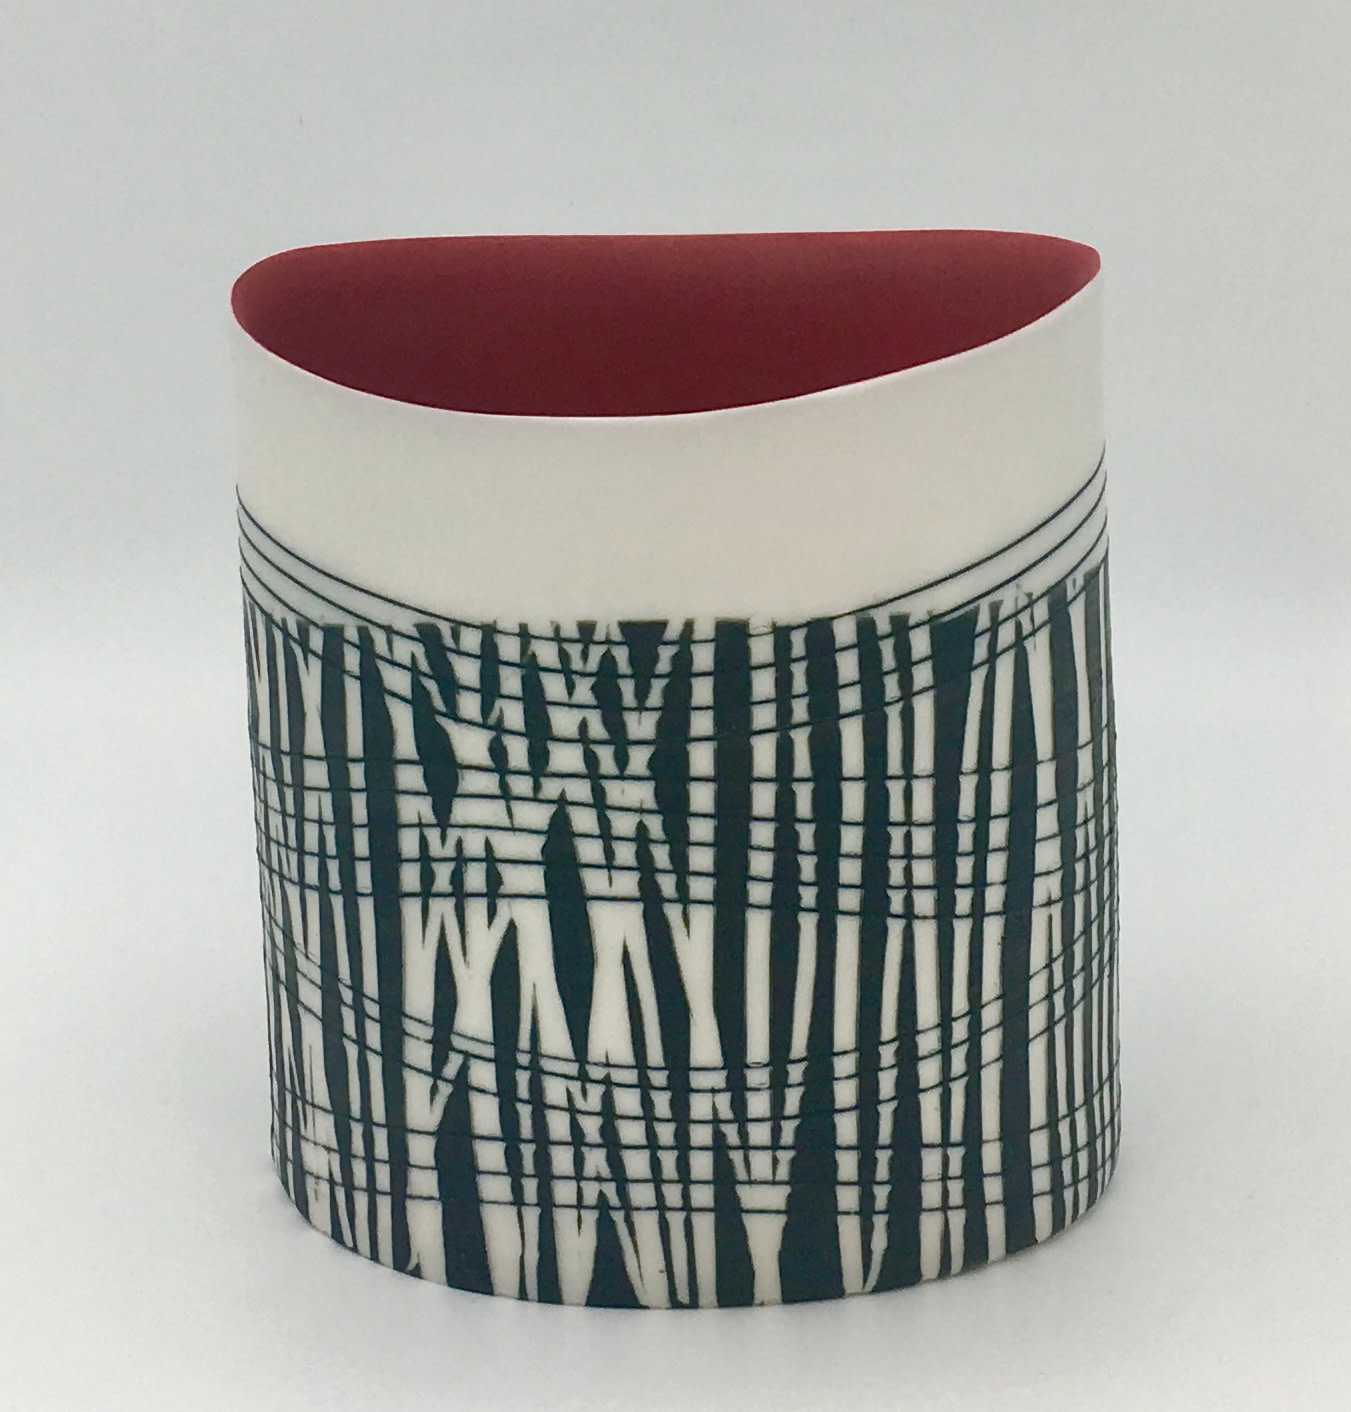 "<span class=""link fancybox-details-link""><a href=""/artists/195-lara-scobie/works/6524-lara-scobie-oval-vessel-with-red-interior-2019/"">View Detail Page</a></span><div class=""artist""><strong>Lara Scobie</strong></div> <div class=""title""><em>Oval Vessel with Red Interior</em>, 2019</div> <div class=""medium"">Porcelain</div><div class=""copyright_line"">Own Art: £28 x 10 Months, 0% APR</div>"